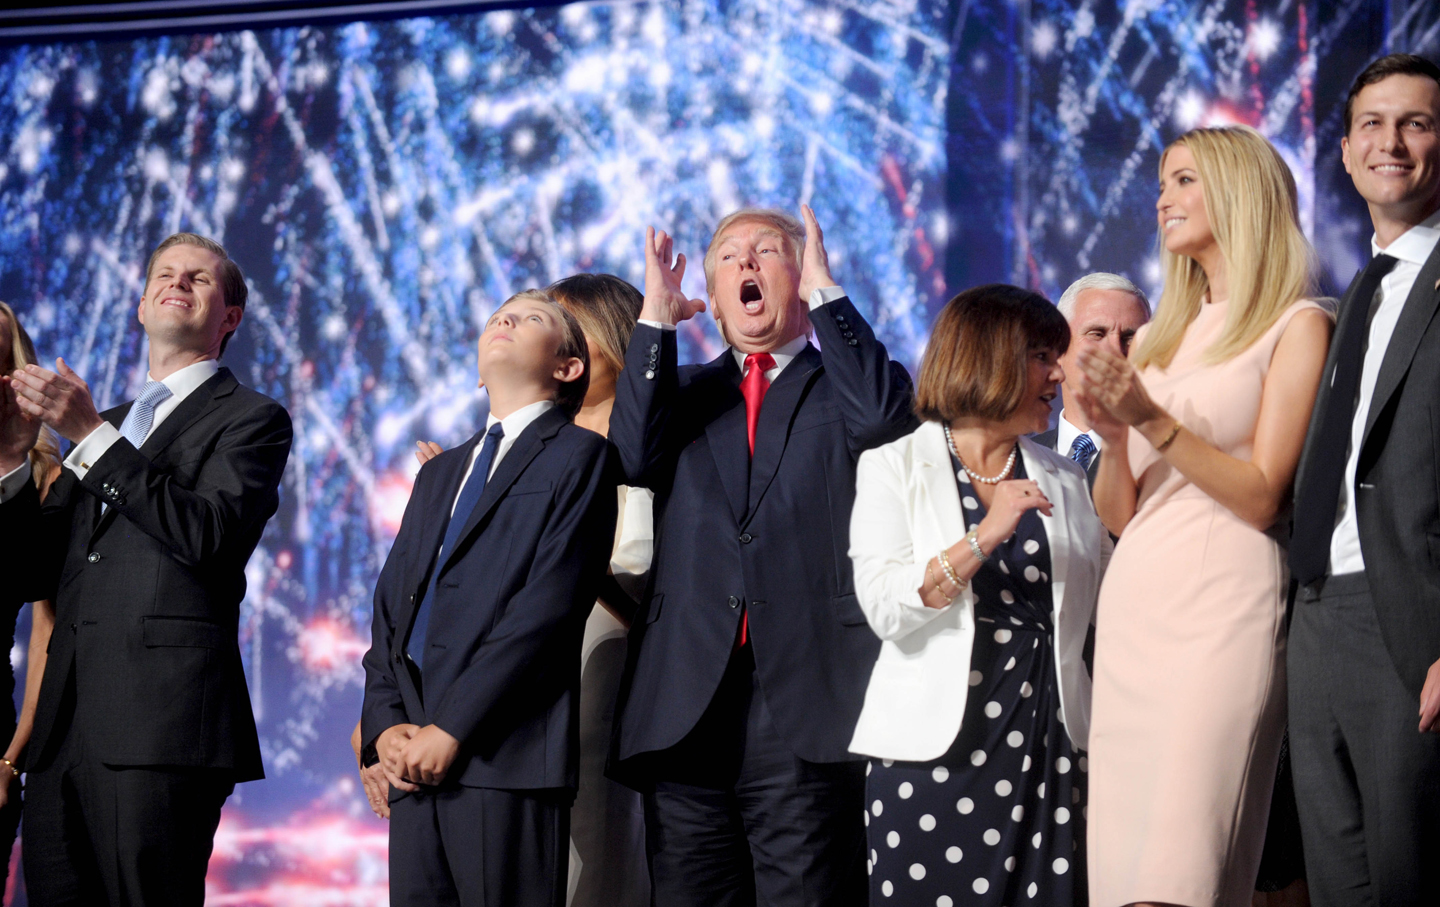 a rhetorical analysis of donald trumps republican national convention speech Day 4: donald trump formally accepted the republican party's 2016 presidential nomination, in a speech laden with attacks on the political establishment and bold promises to fix america's.